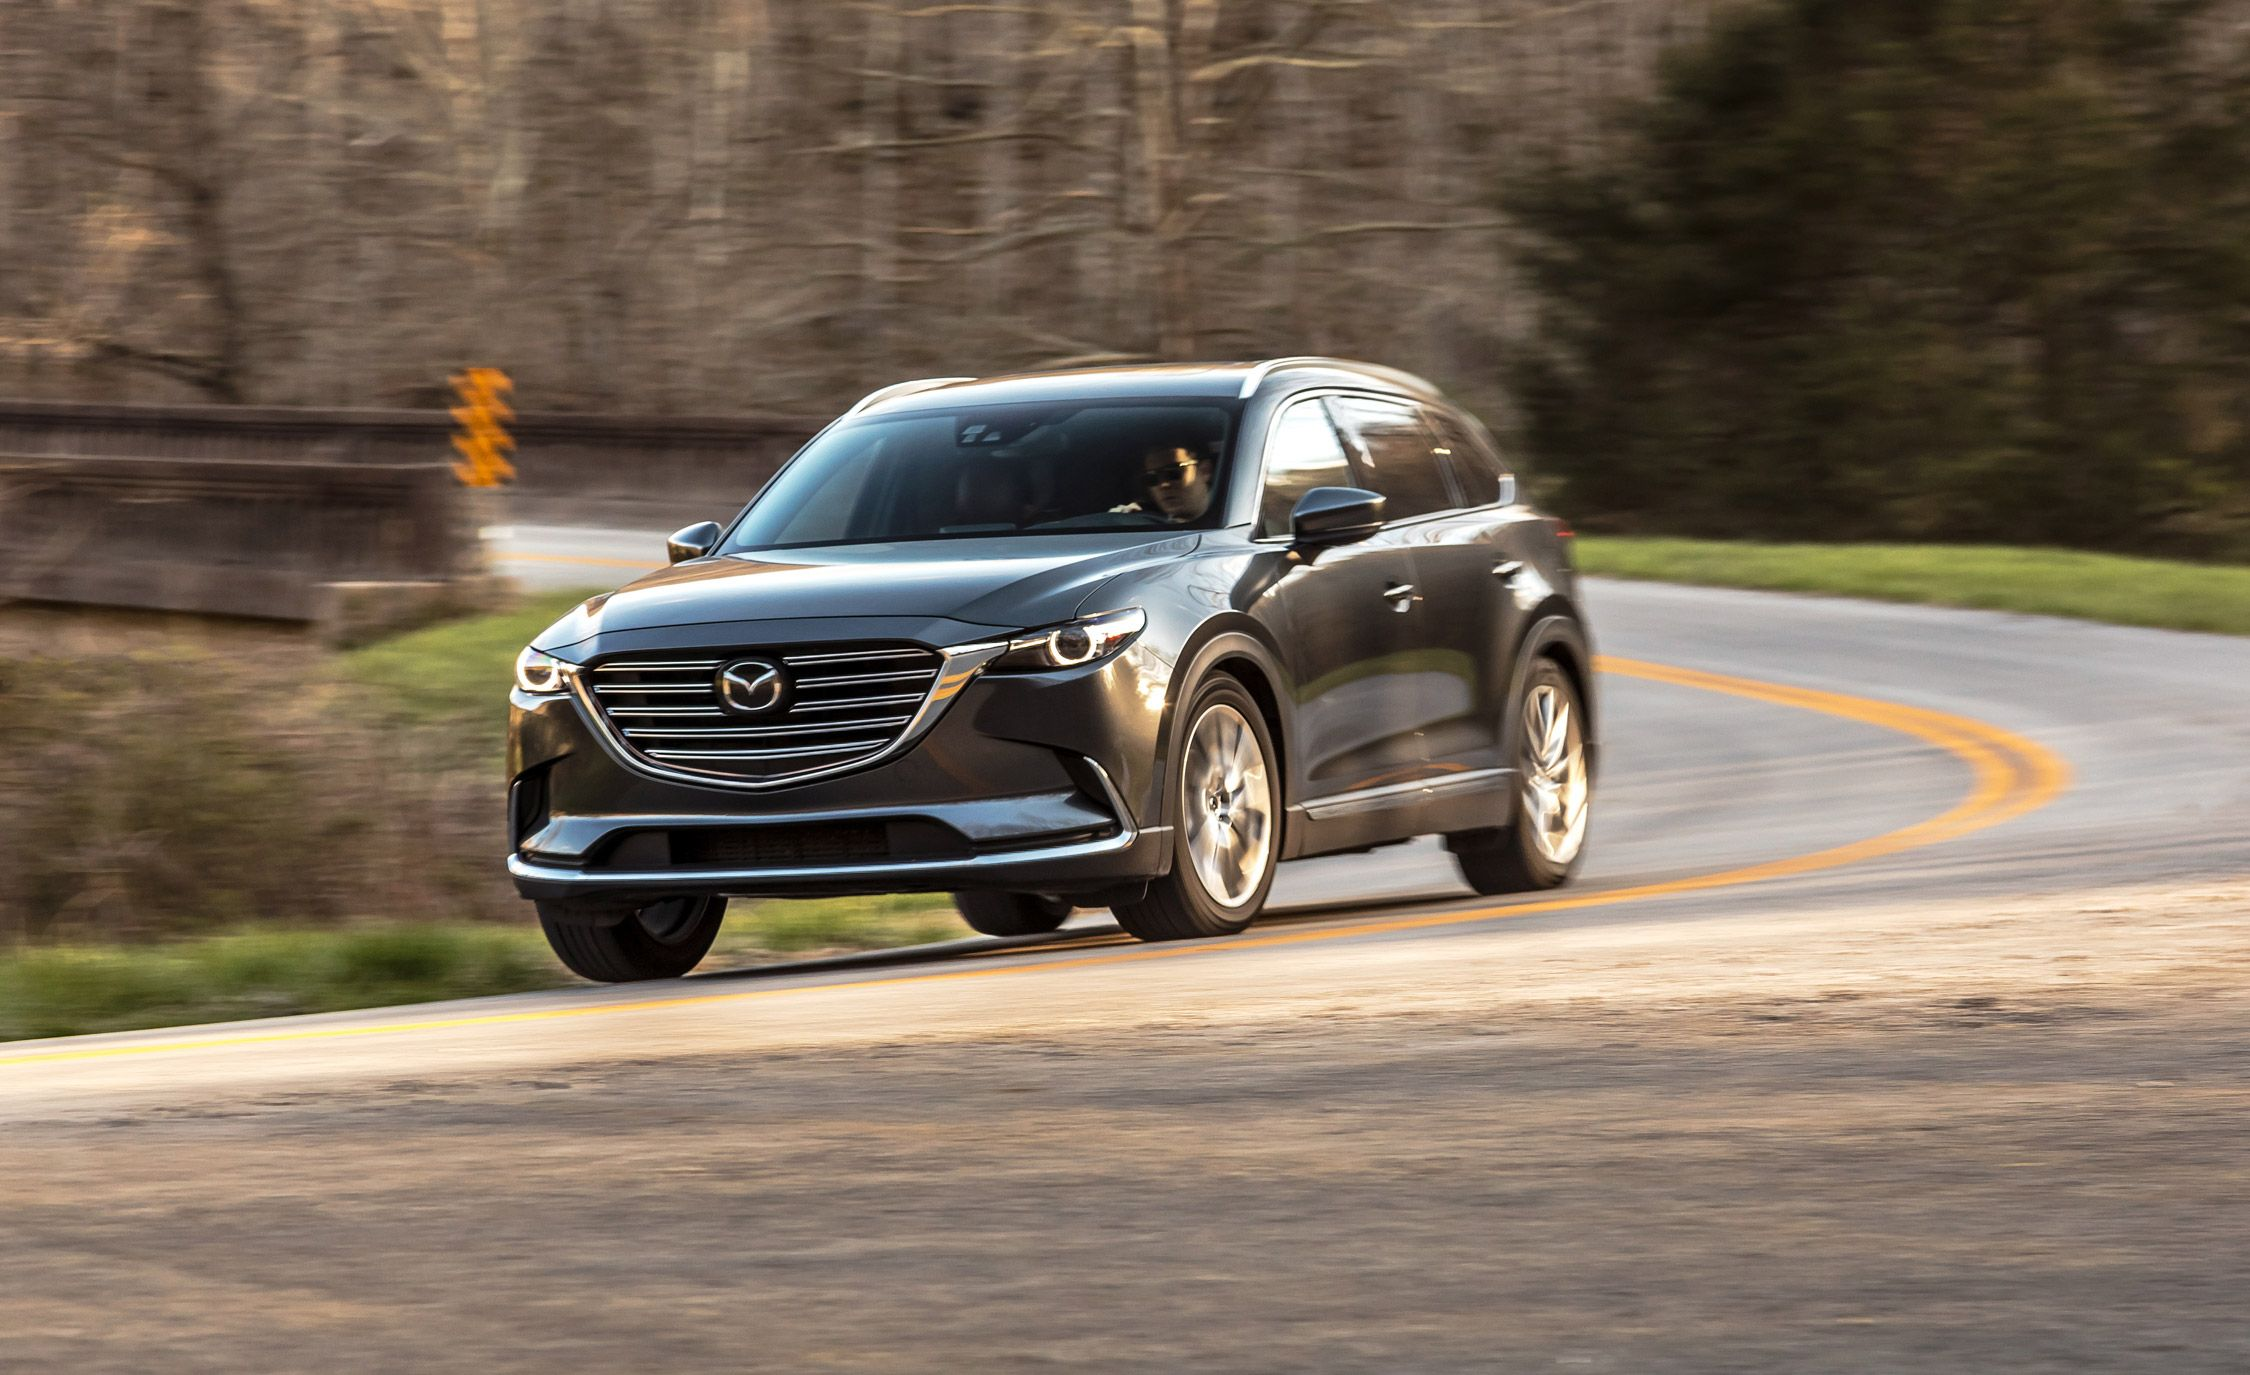 2016 mazda cx 9 long term test wrap up review car and driverimage st car and driver where is the fuel filter  [ 2250 x 1375 Pixel ]